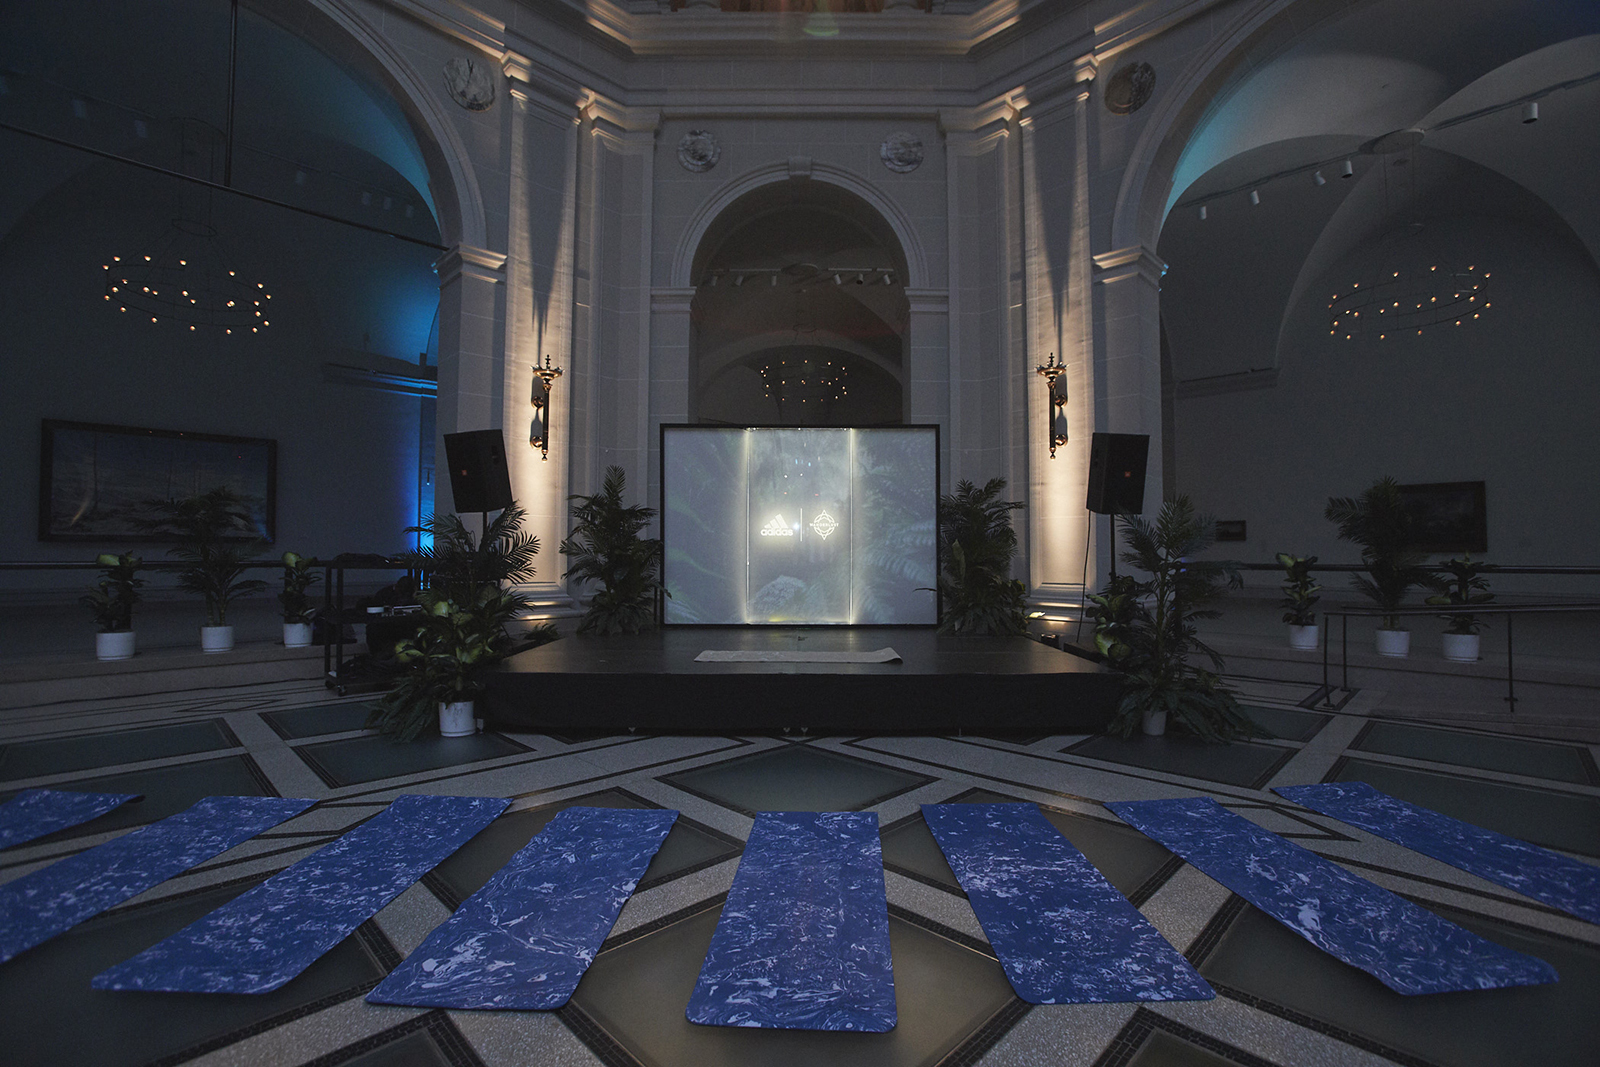 A stage  with a lit screen in a dimly lit atrium, surrounded by plants, is faced by a row of empty yoga mats.